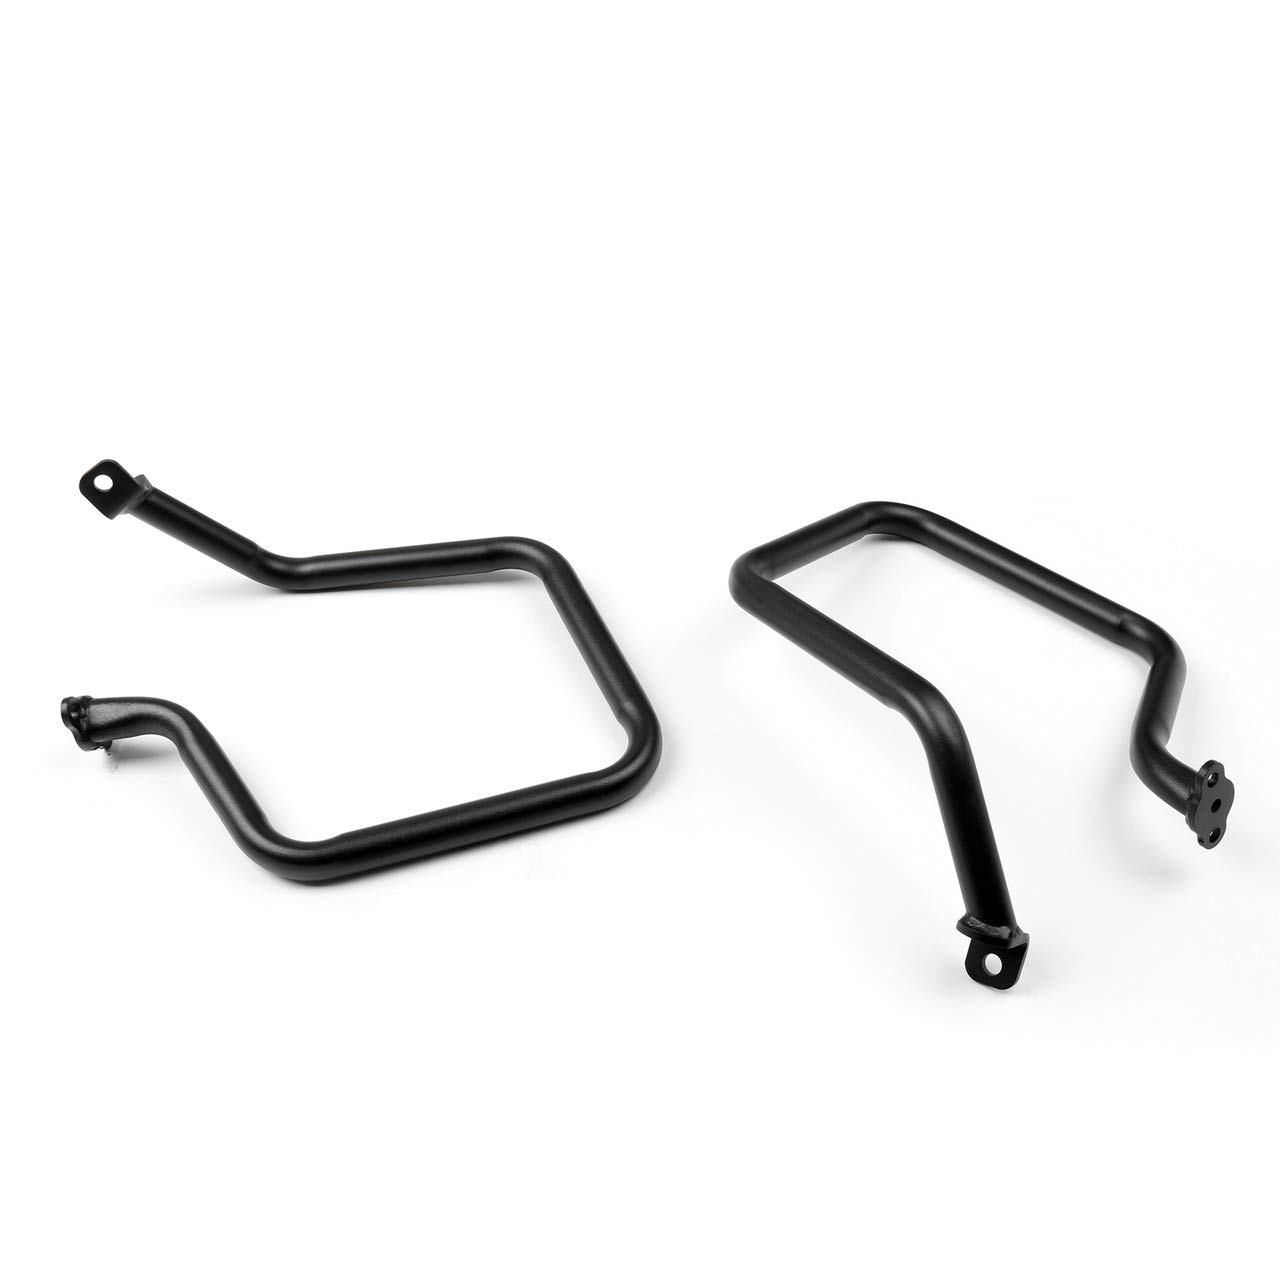 COPART Front Engine Guard Highway Crash Bars Engine Protectors for BMW R1200RT 2014-2017 Silver